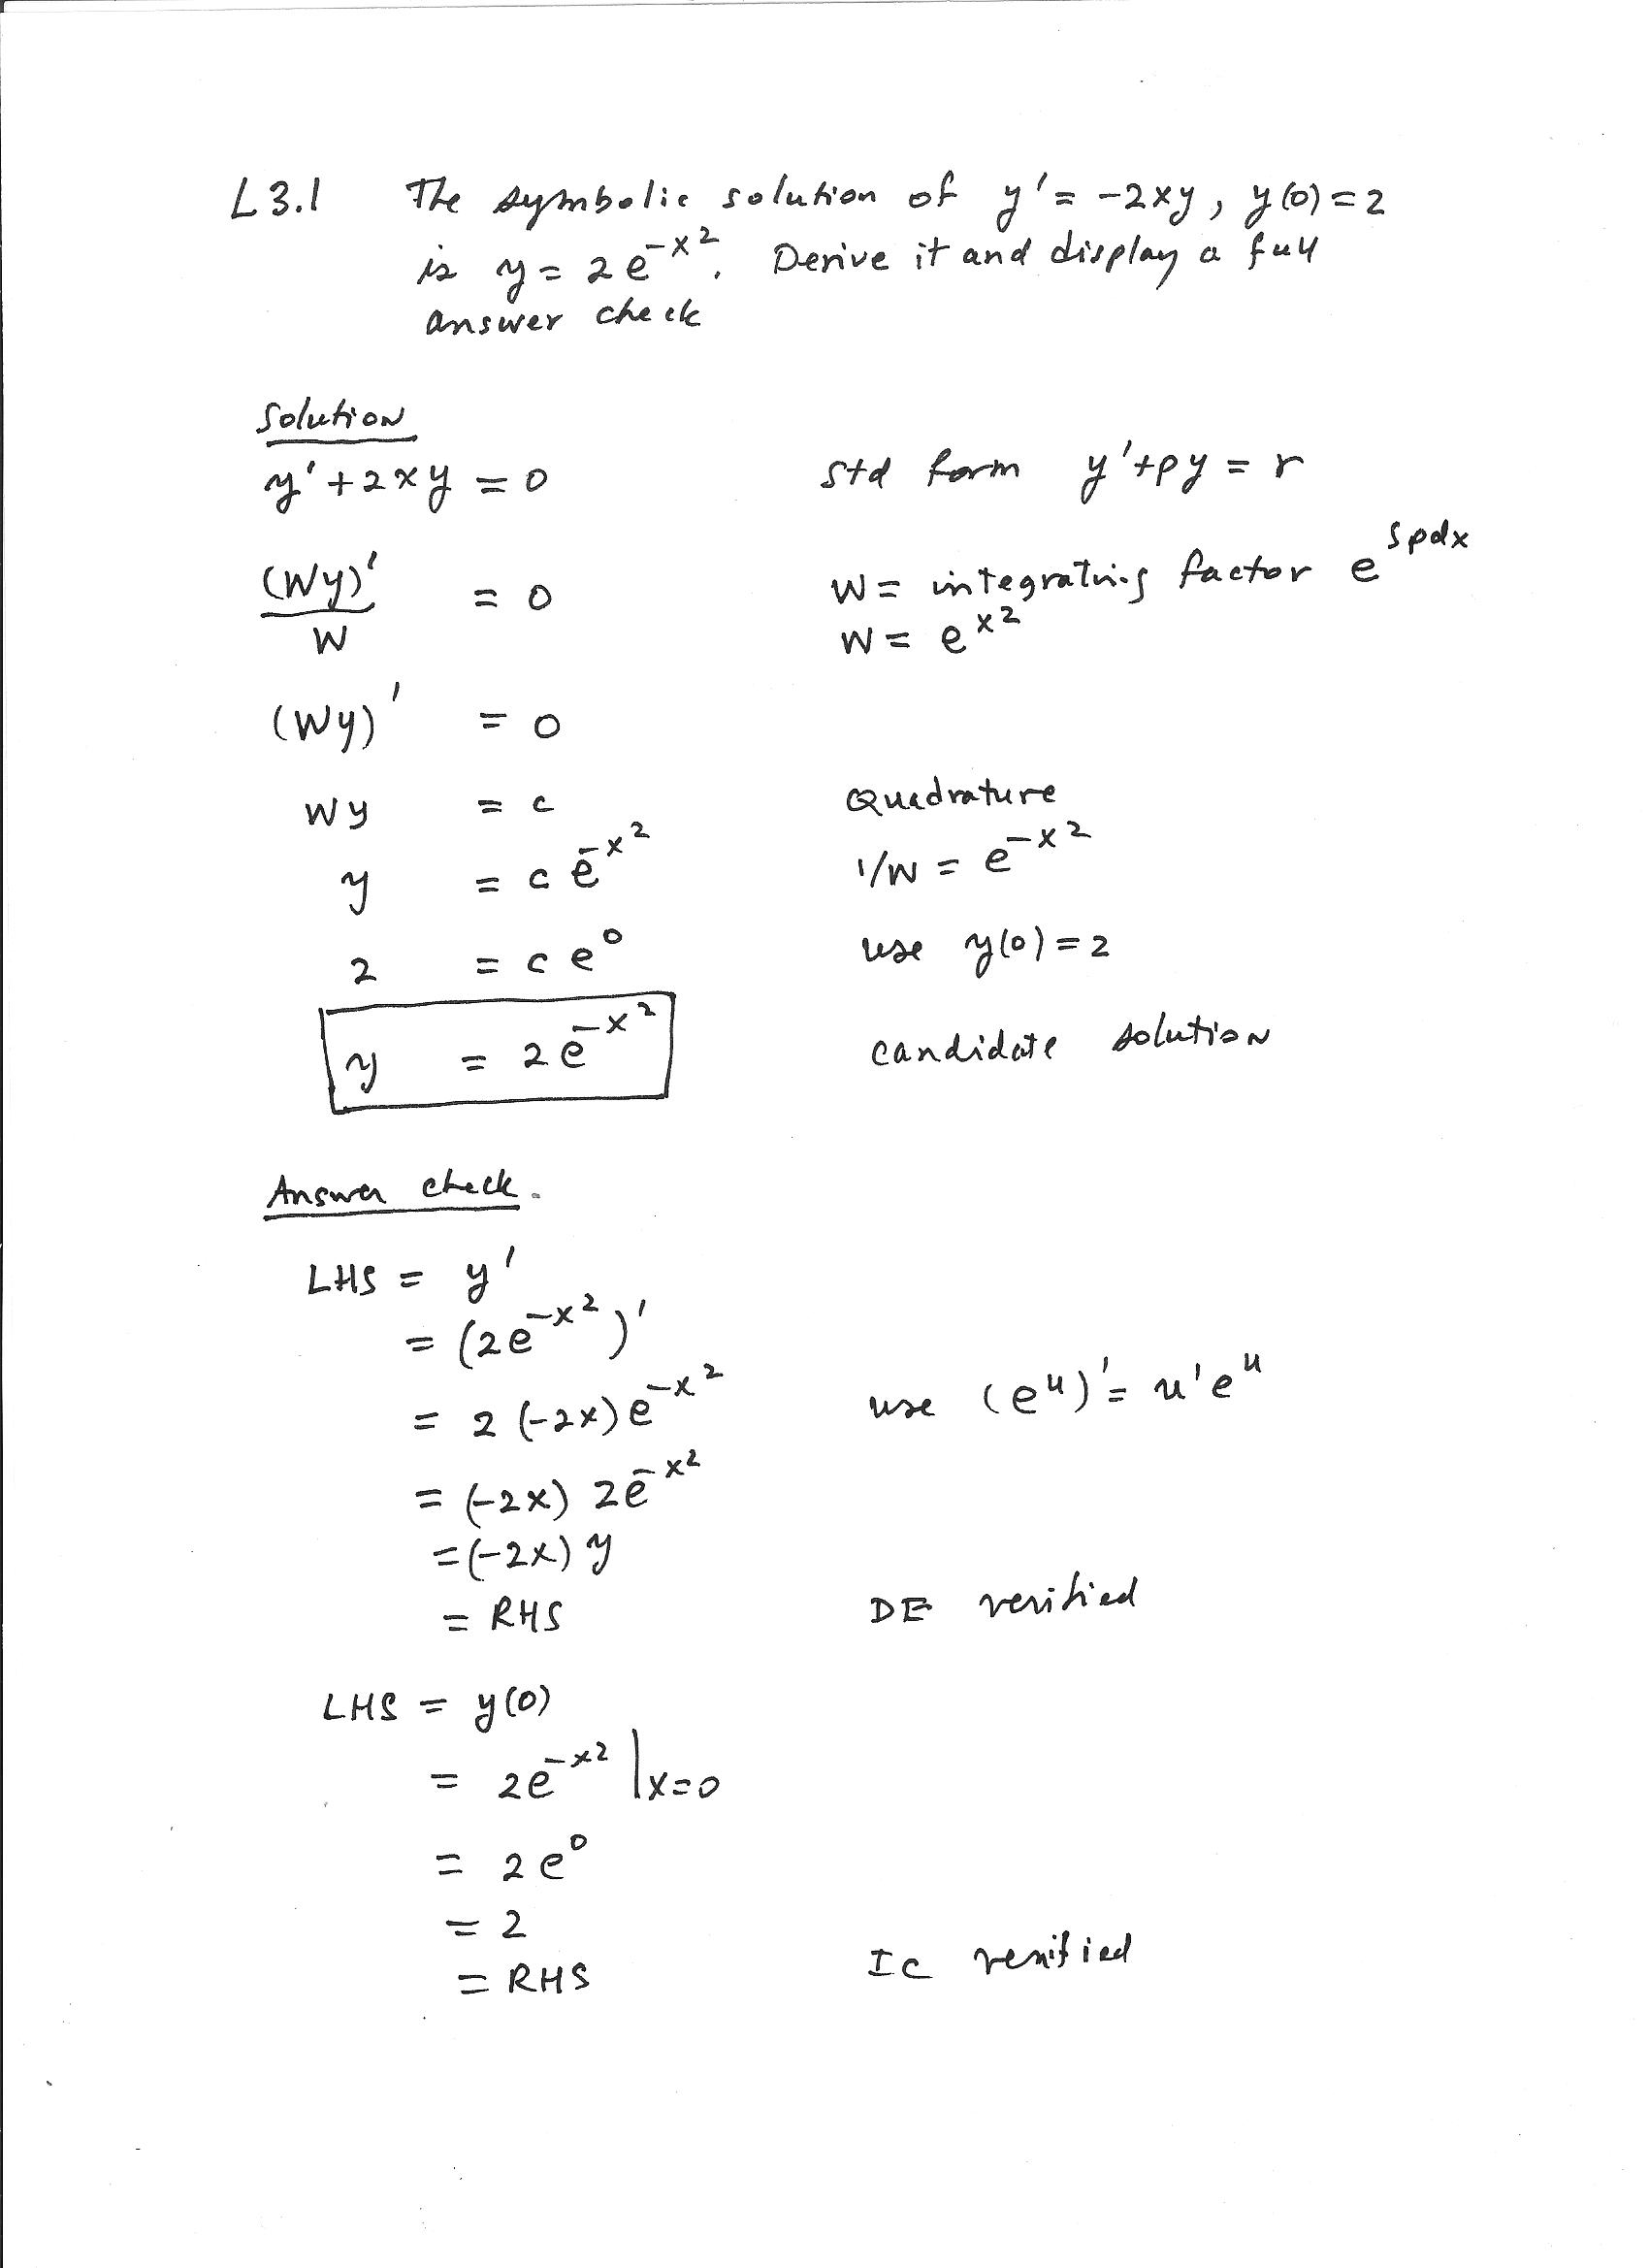 Worksheet Algebra 1 Worksheets Pdf algebra 1 review worksheets pdf delwfg com 2250 2 7 30am week 4 lecture record f2010